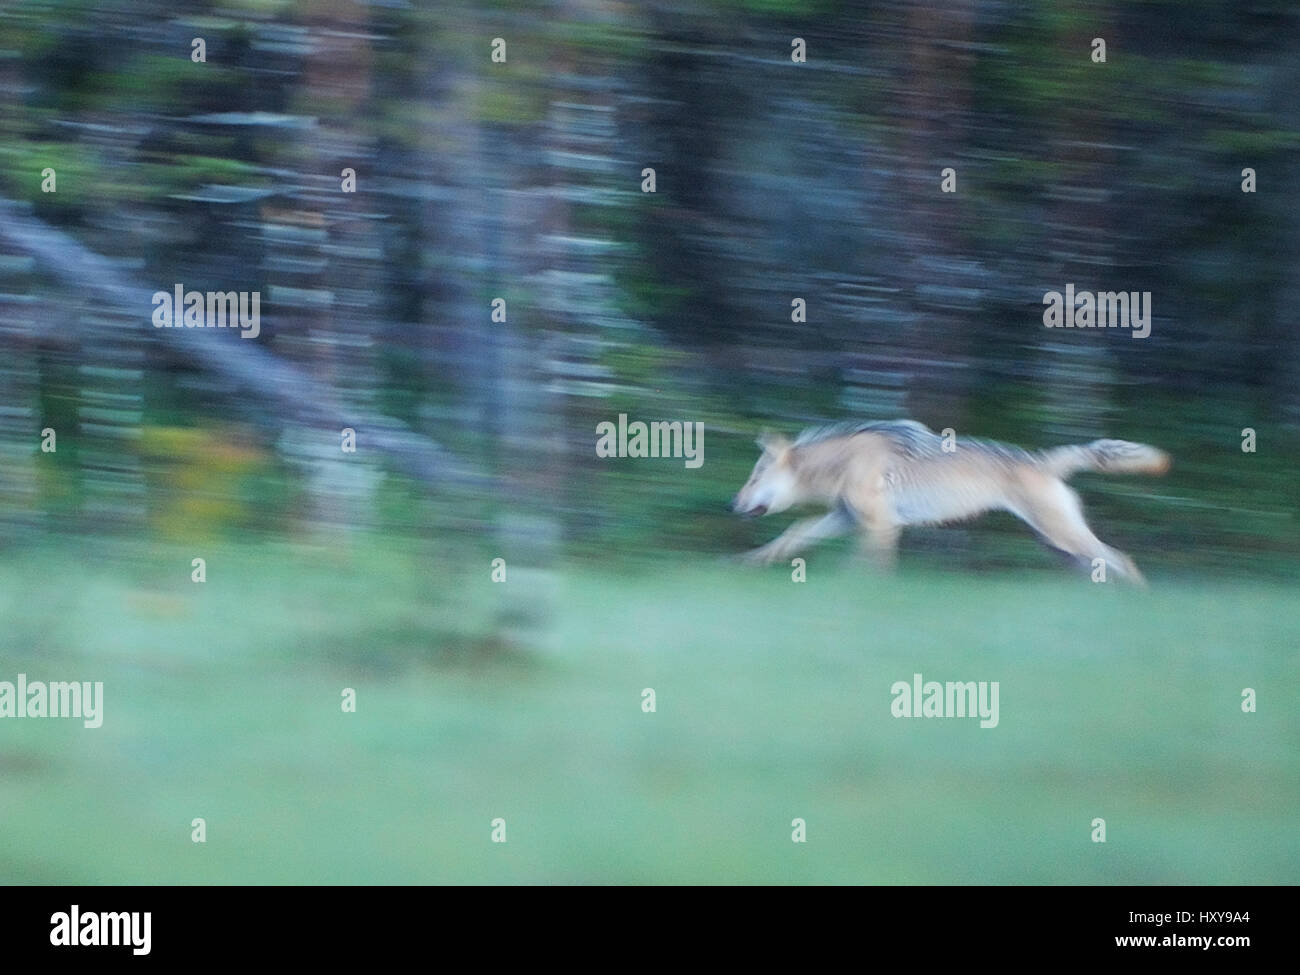 Wild European Grey wolf (Canis lupus) running at night, Kuhmo, Finland. July. Stock Photo